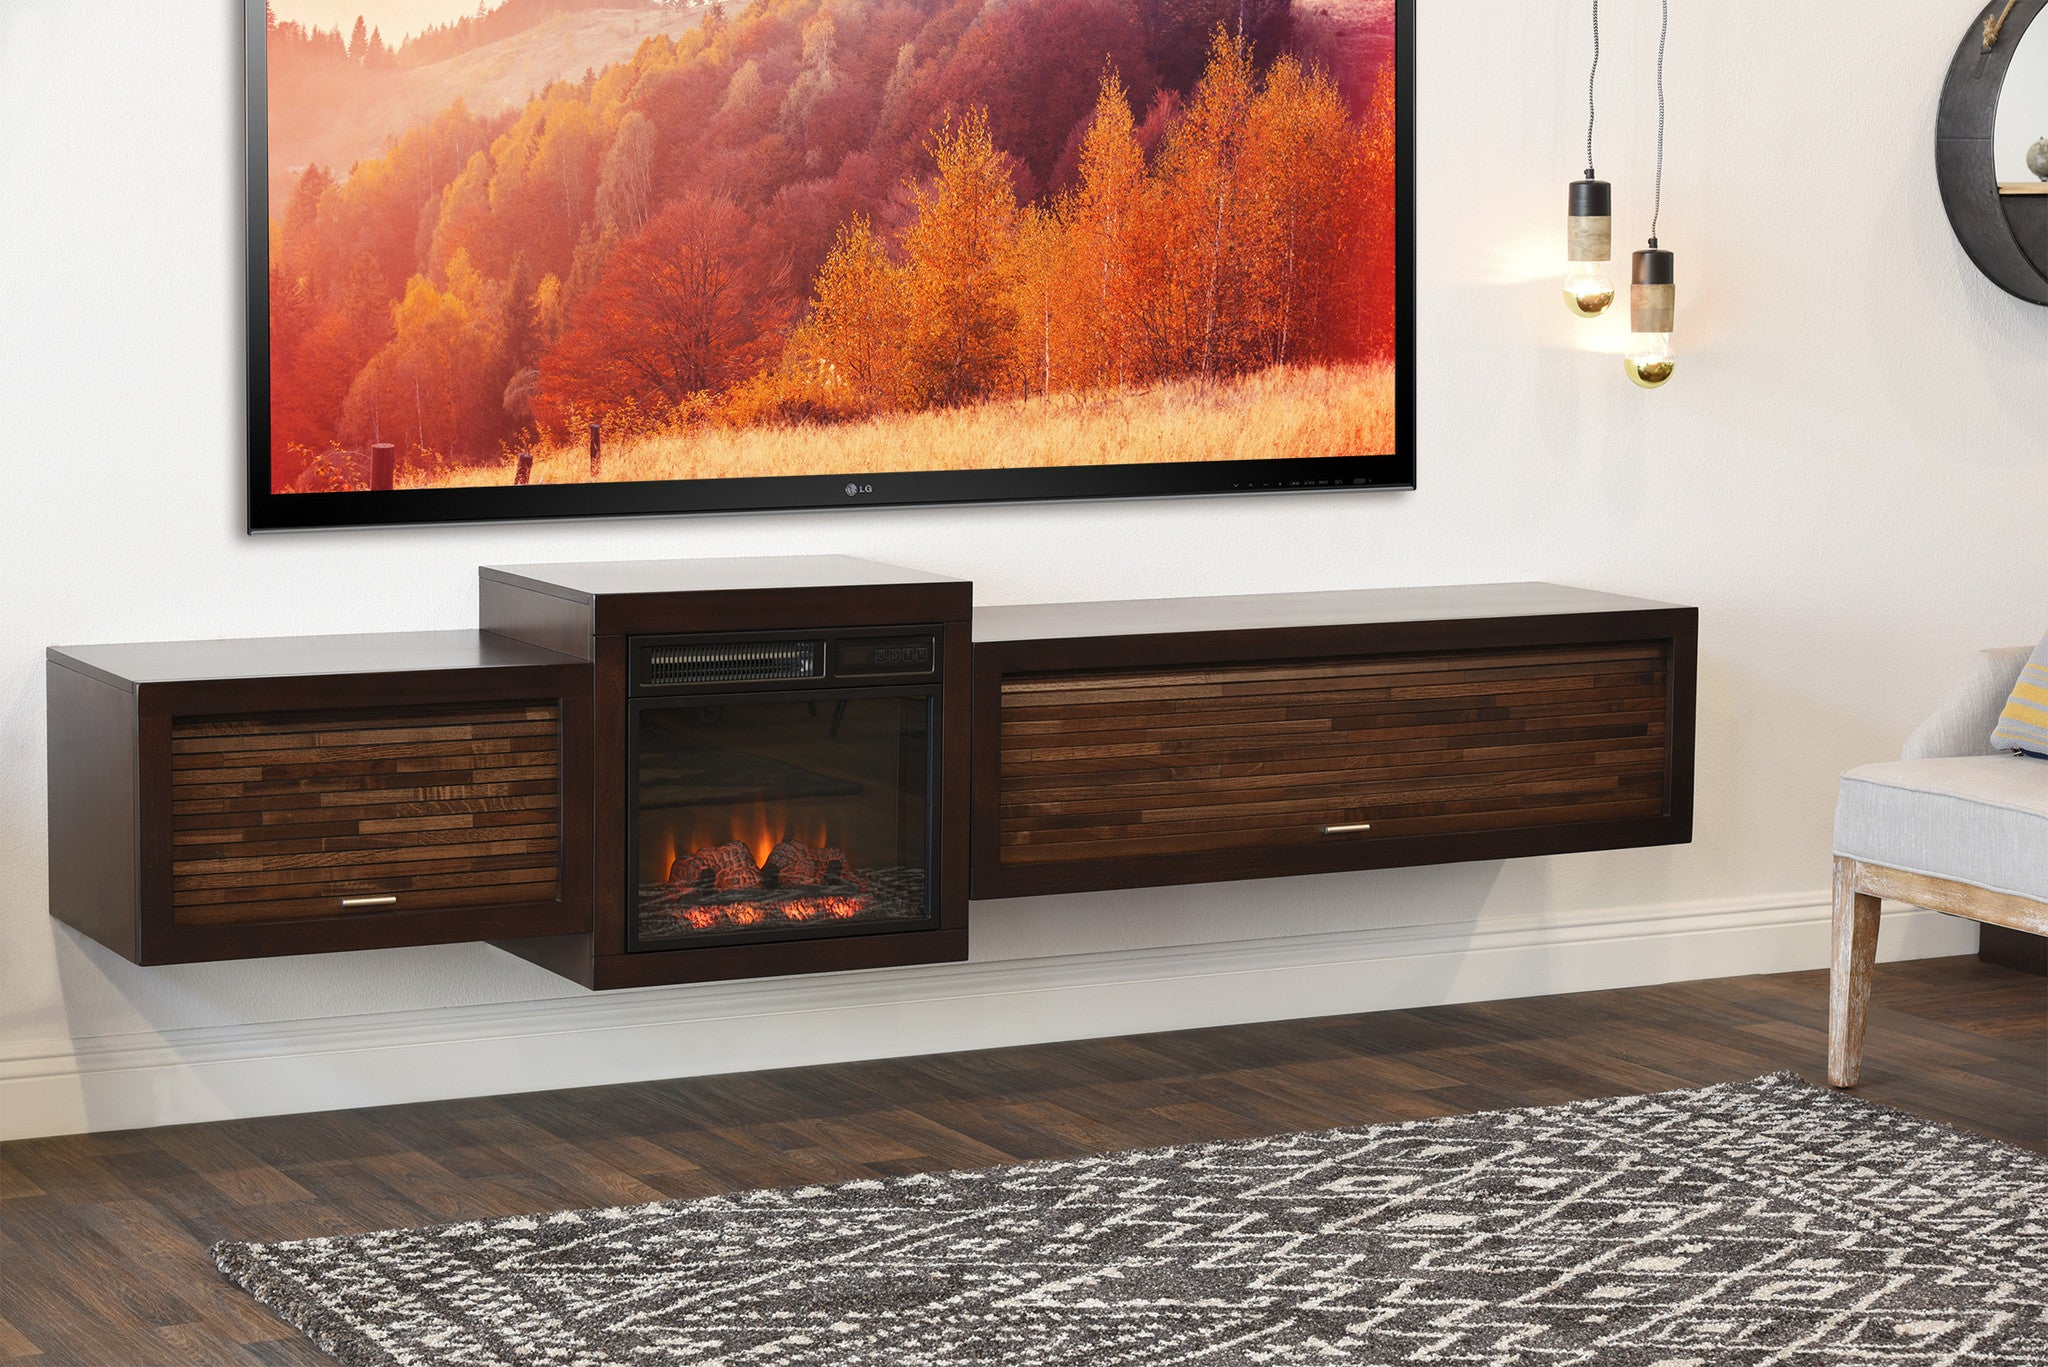 Floating fireplace wall mount tv stand eco geo espresso for In wall tv cabinet